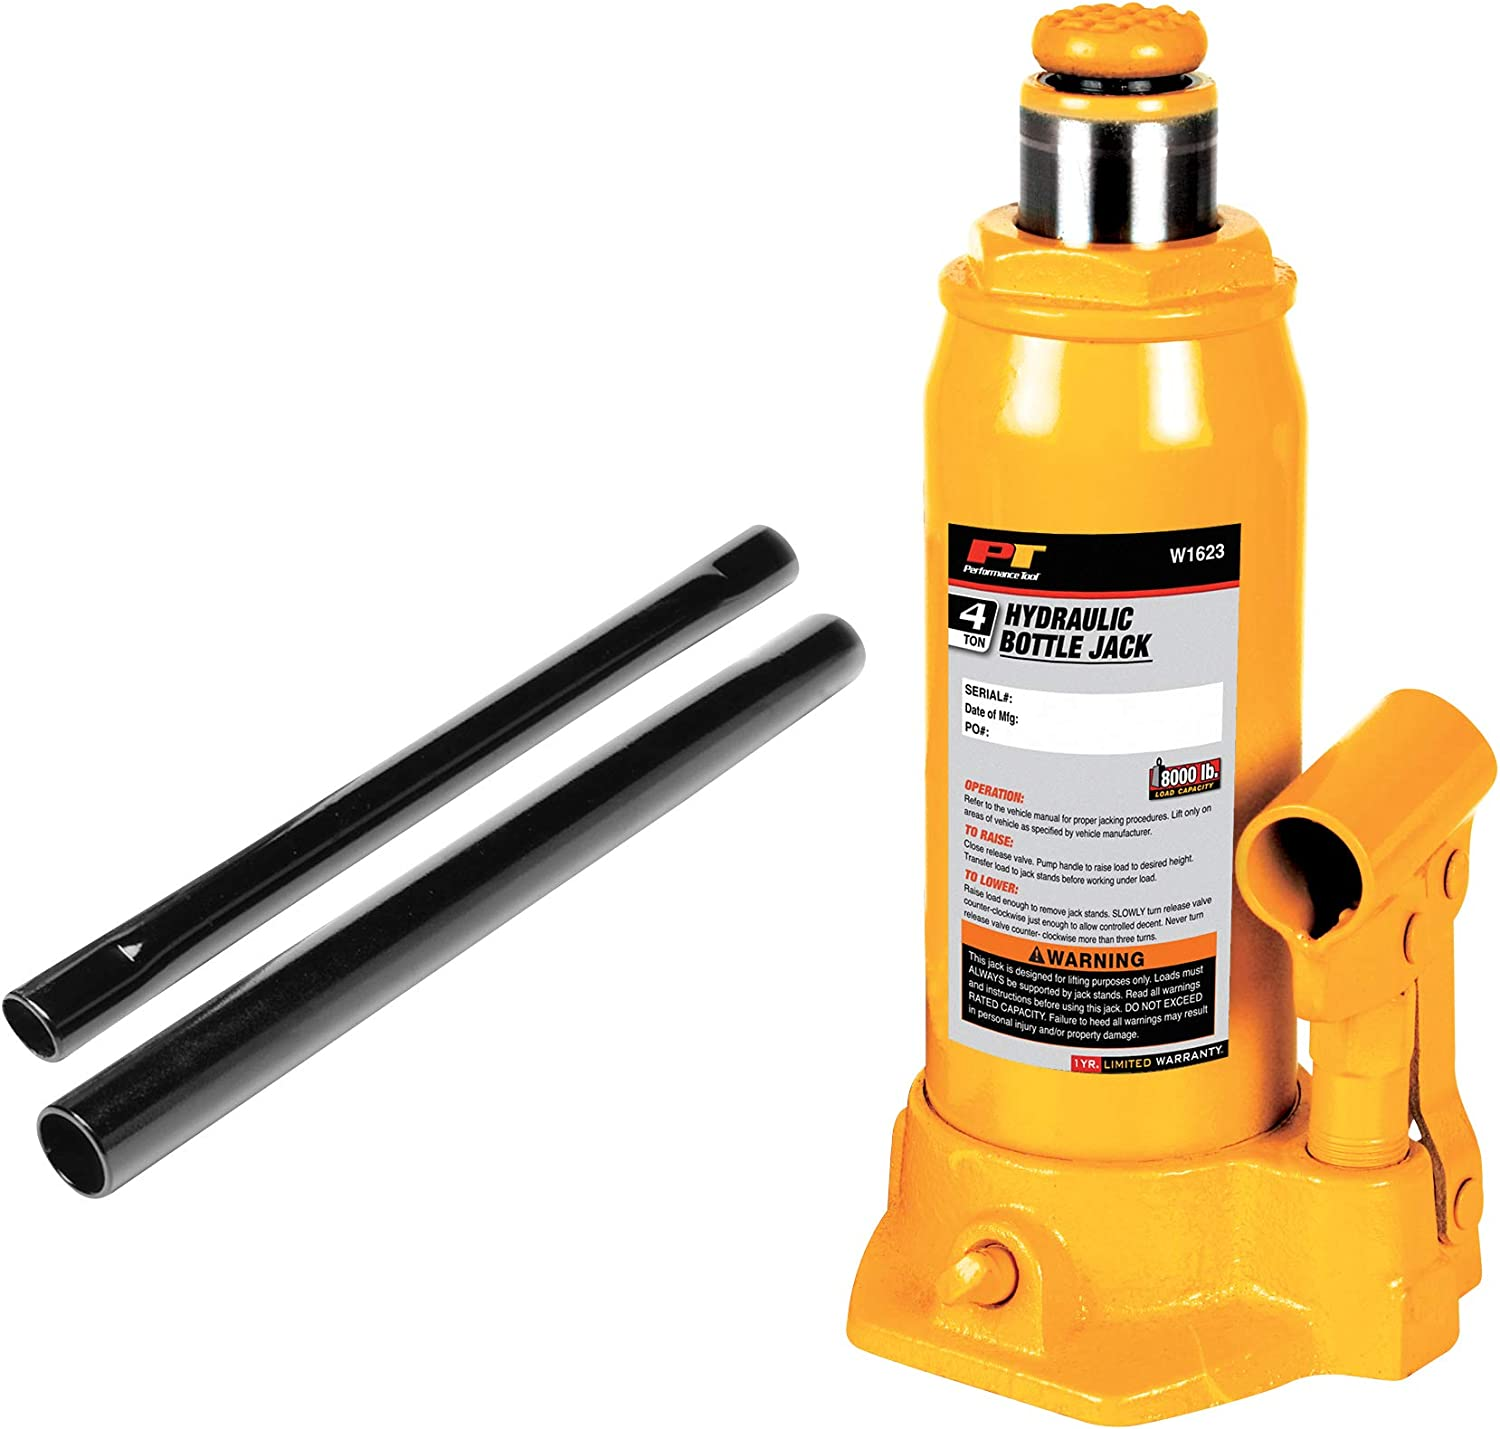 Heavy Duty Hydraulic Bottle Jack Performance Tool W1621 2-Ton 4,000 lbs.